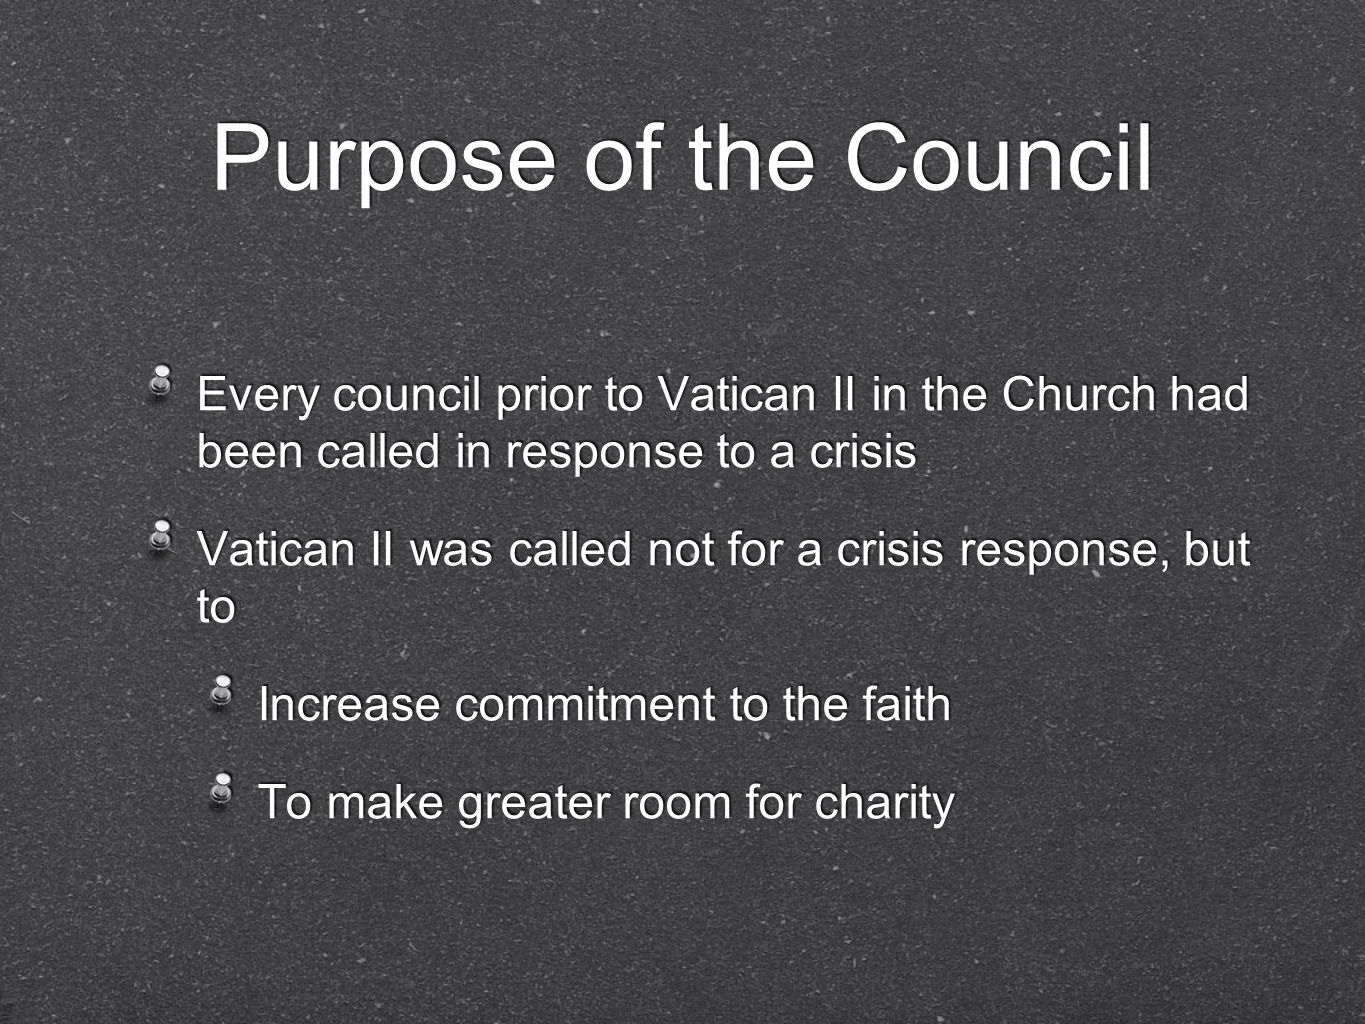 Purpose of the Council Every council prior to Vatican II in the Church had been called in response to a crisis.